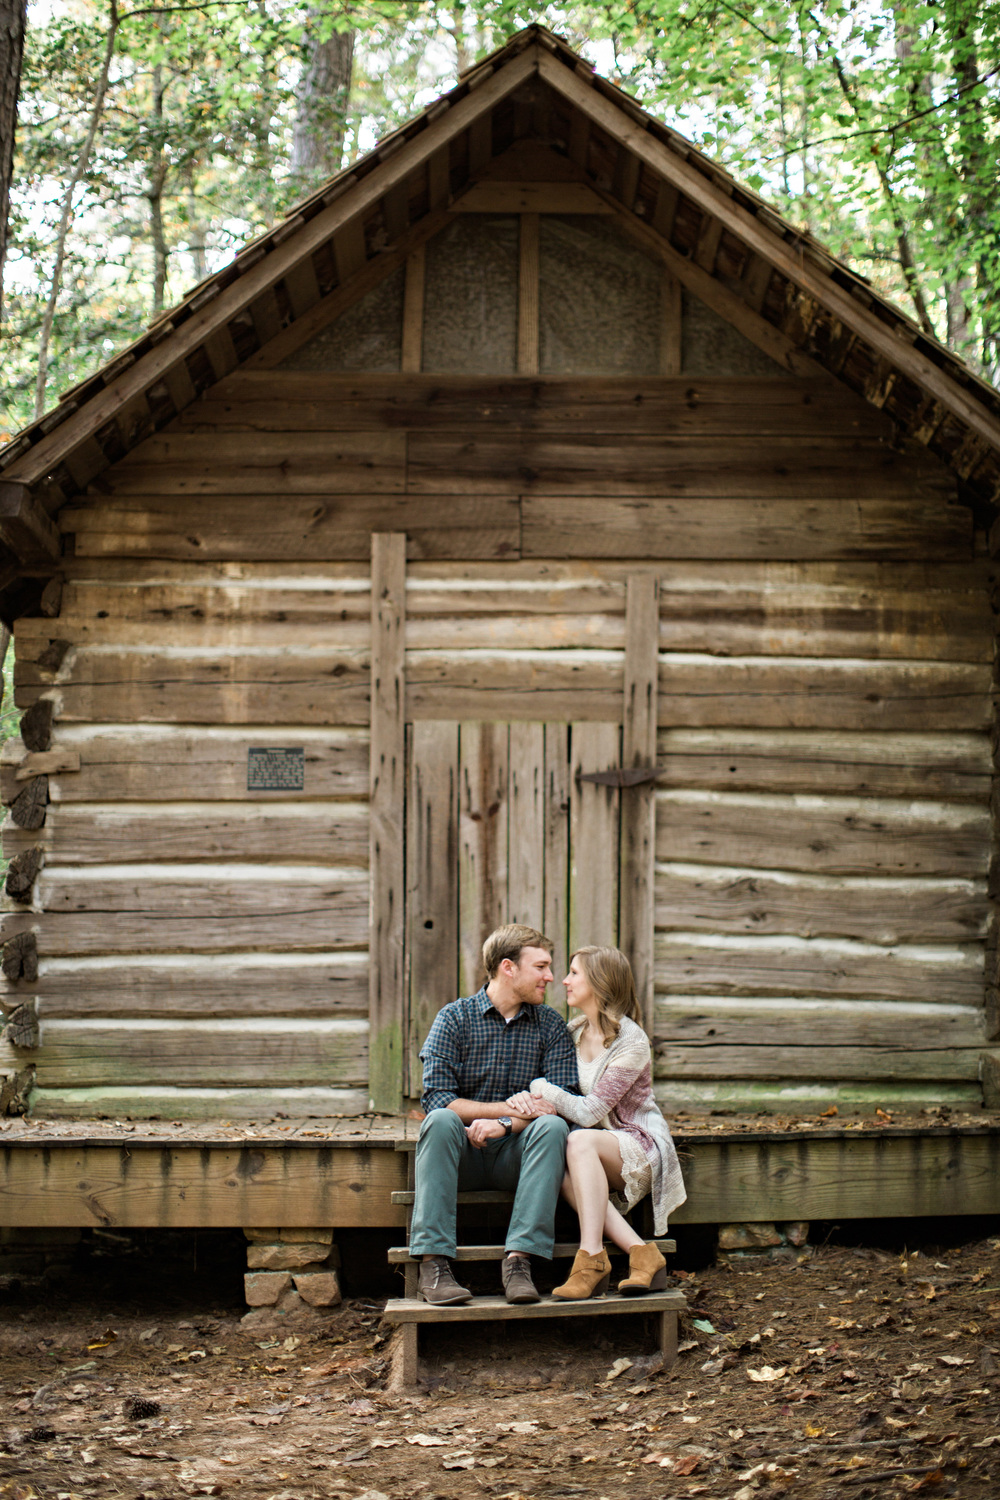 Alabama-Wedding-Photographers-Montgomery-Dothan-Engagements-Nick-Drollette-114.jpg